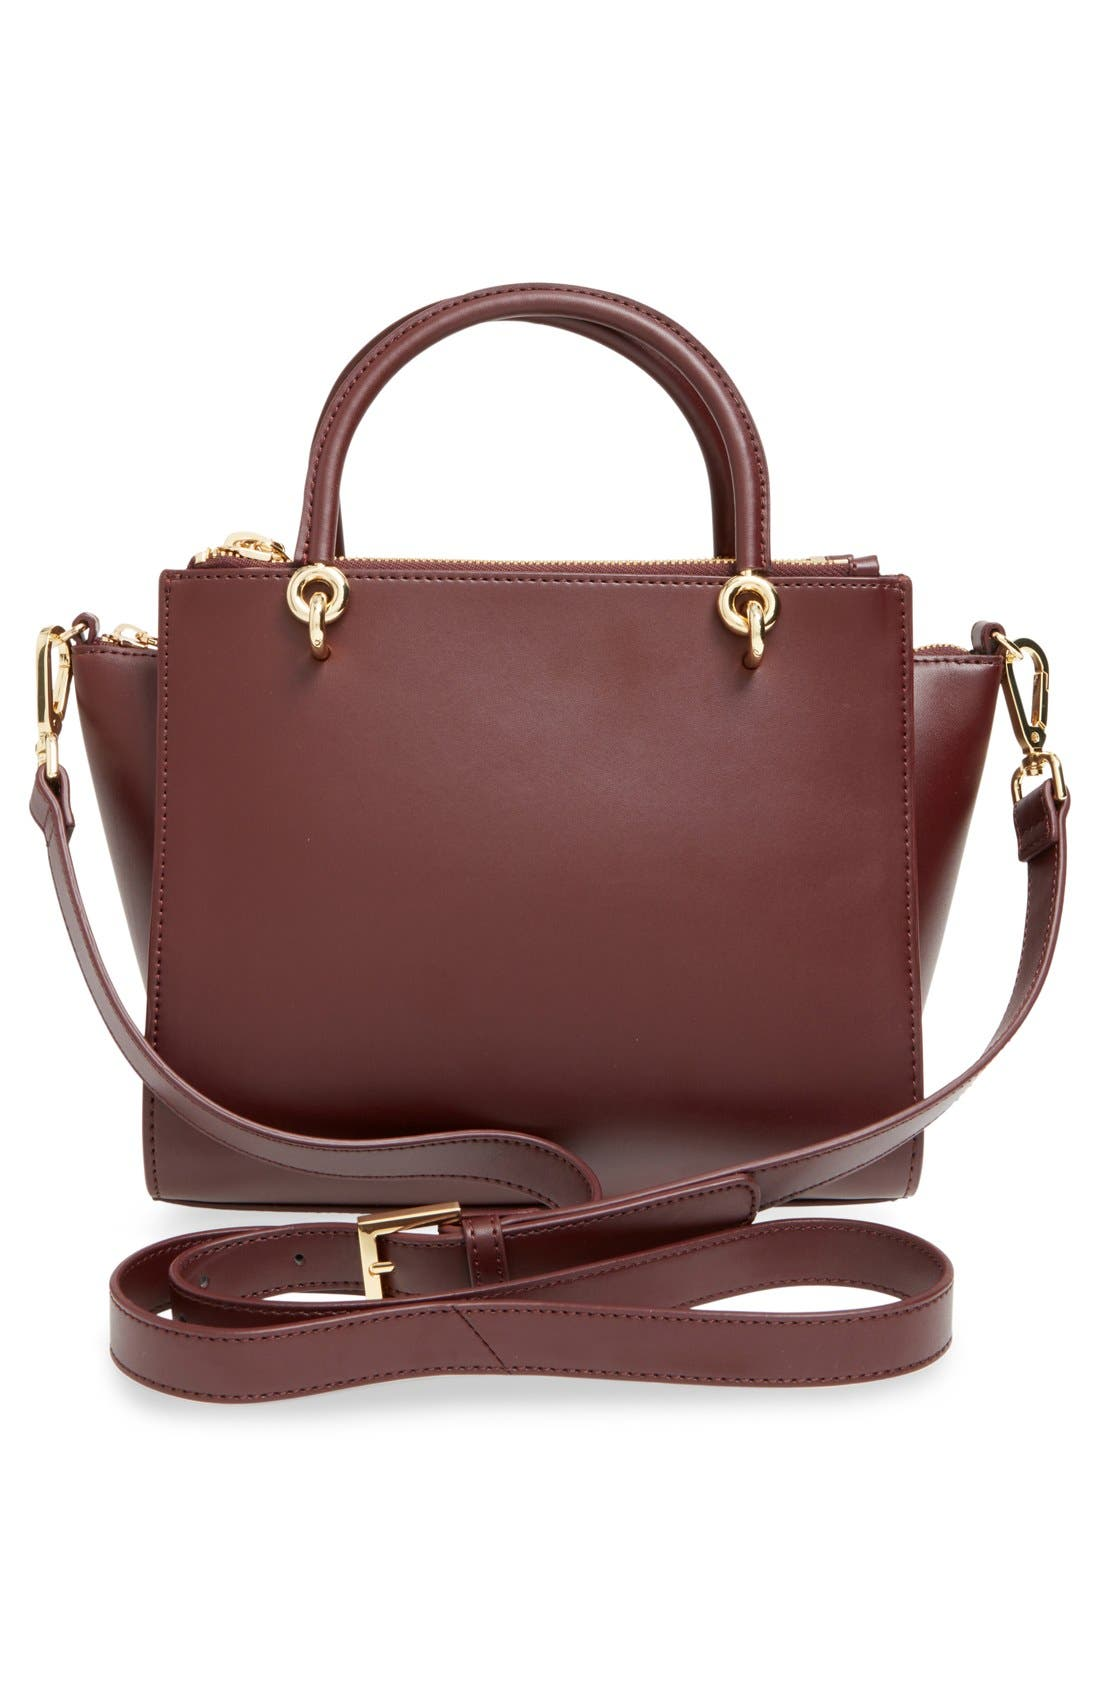 Alternate Image 3  - Ted Baker London 'Haylie' Leather & Genuine Calf Hair Crossbody Tote Bag